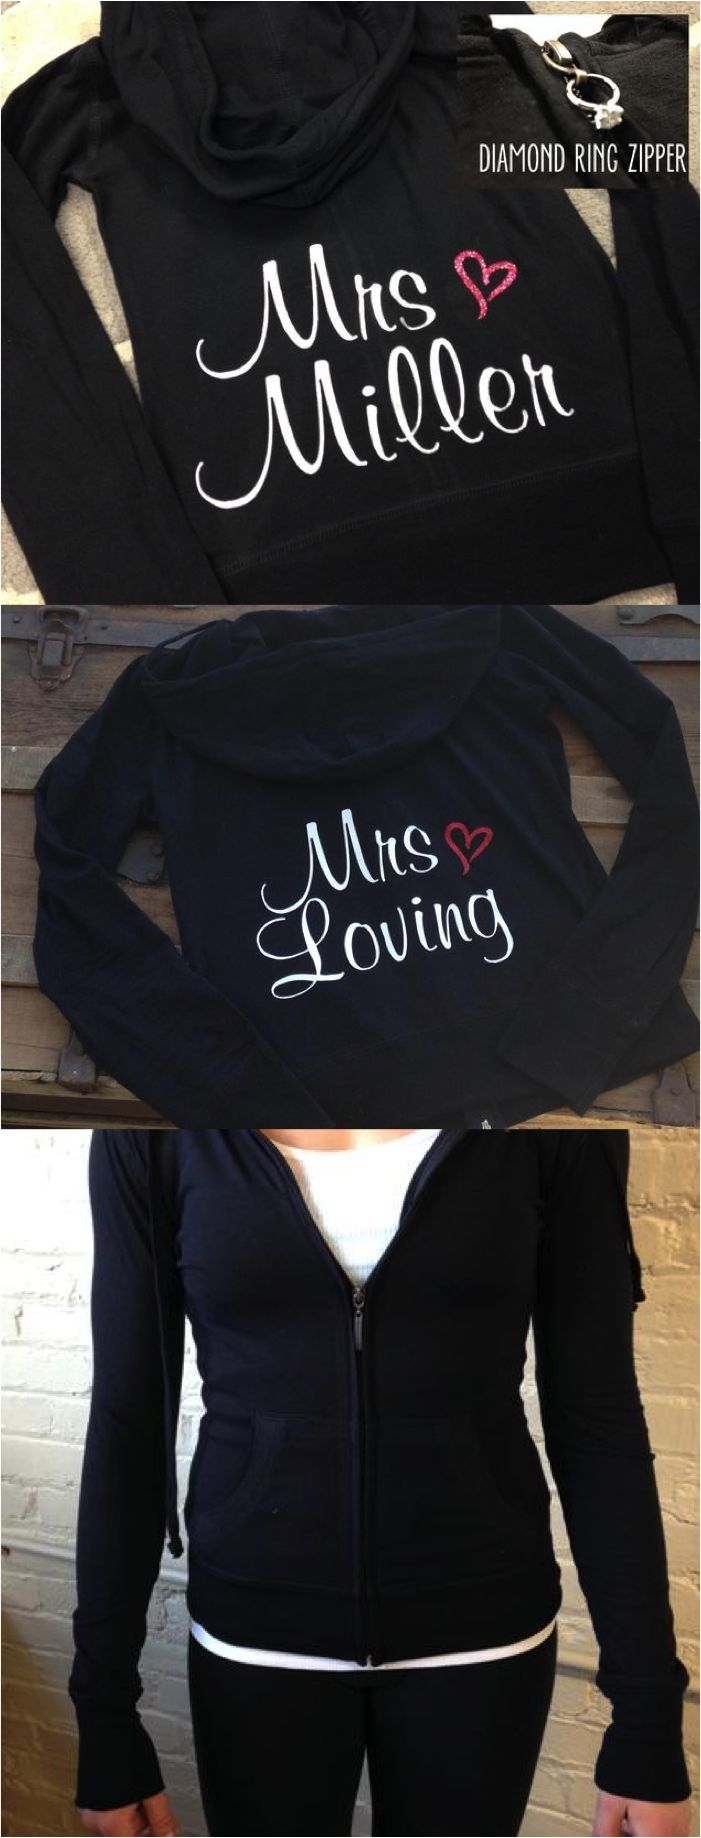 These personalized bride hoodies are adorable and super comfy! Soft, very stretchy, lightweight material makes for a perfect flattering fit. Great to wear while getting ready on the big day (zip up style so you don't mess up your hair!), travel in comfort and style on your honeymoon, or even wear for your bachelorette party! What a unique bridal shower or engagement gift! This is something the bride will keep and enjoy forever. Personalized this hoodie with the bride's new last name!